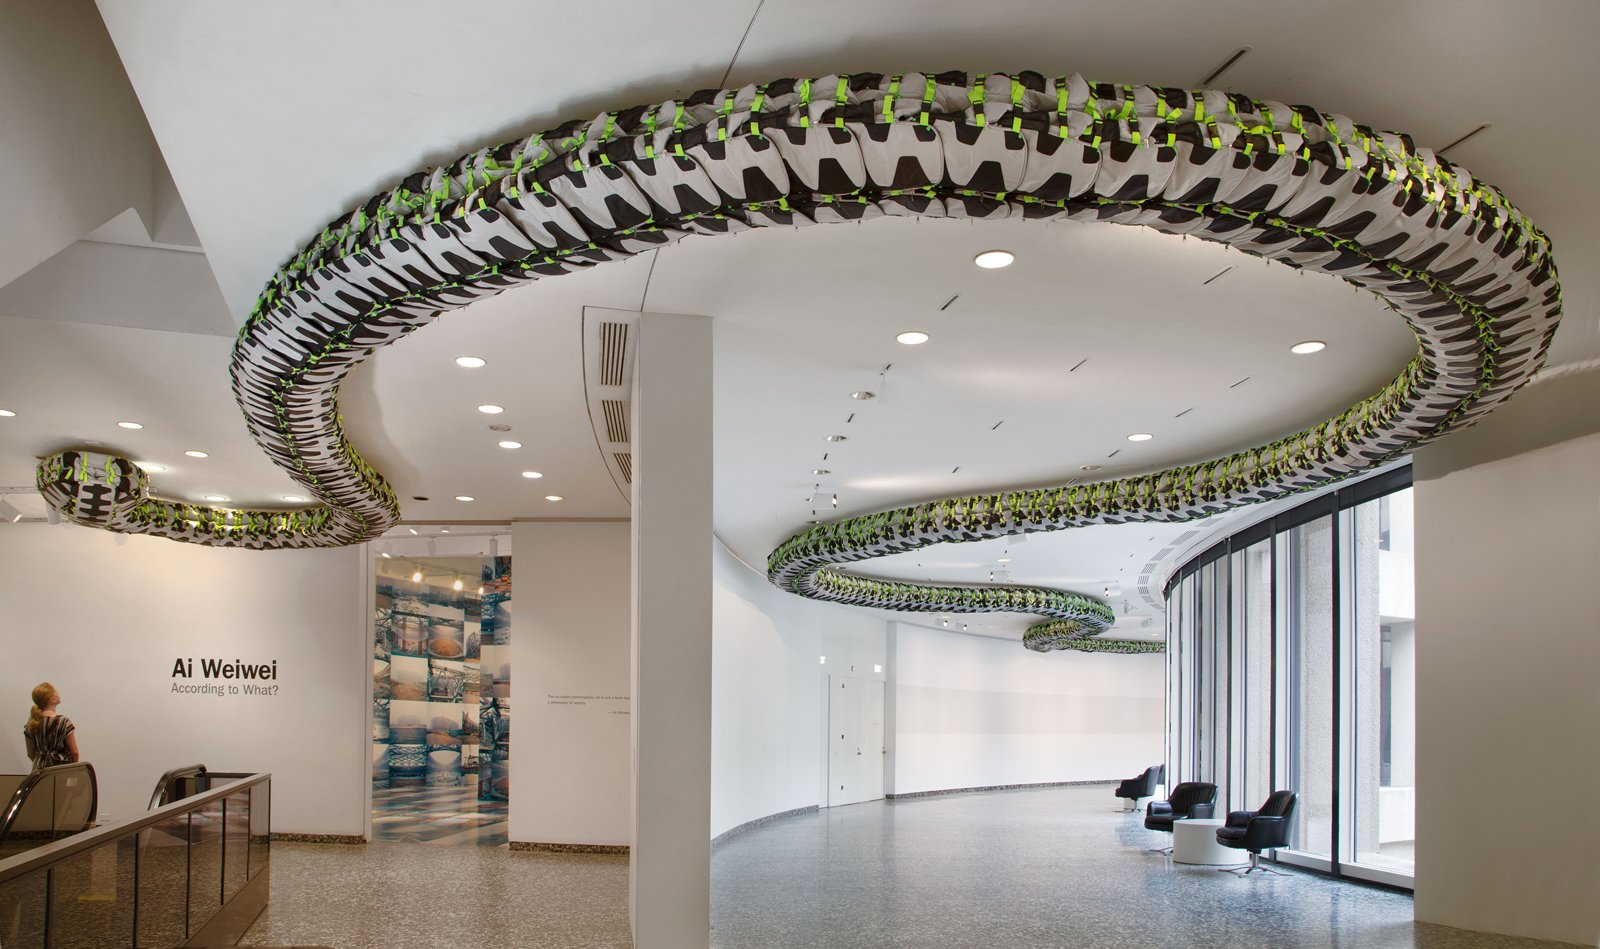 Installation view of Snake Ceiling at the Hirshhorn Museum and Sculpture Garden, Washington D.C., 2012. Photo by Cathy Carver.  Photo 2 of 4 in Ai Weiwei's Washington Moment